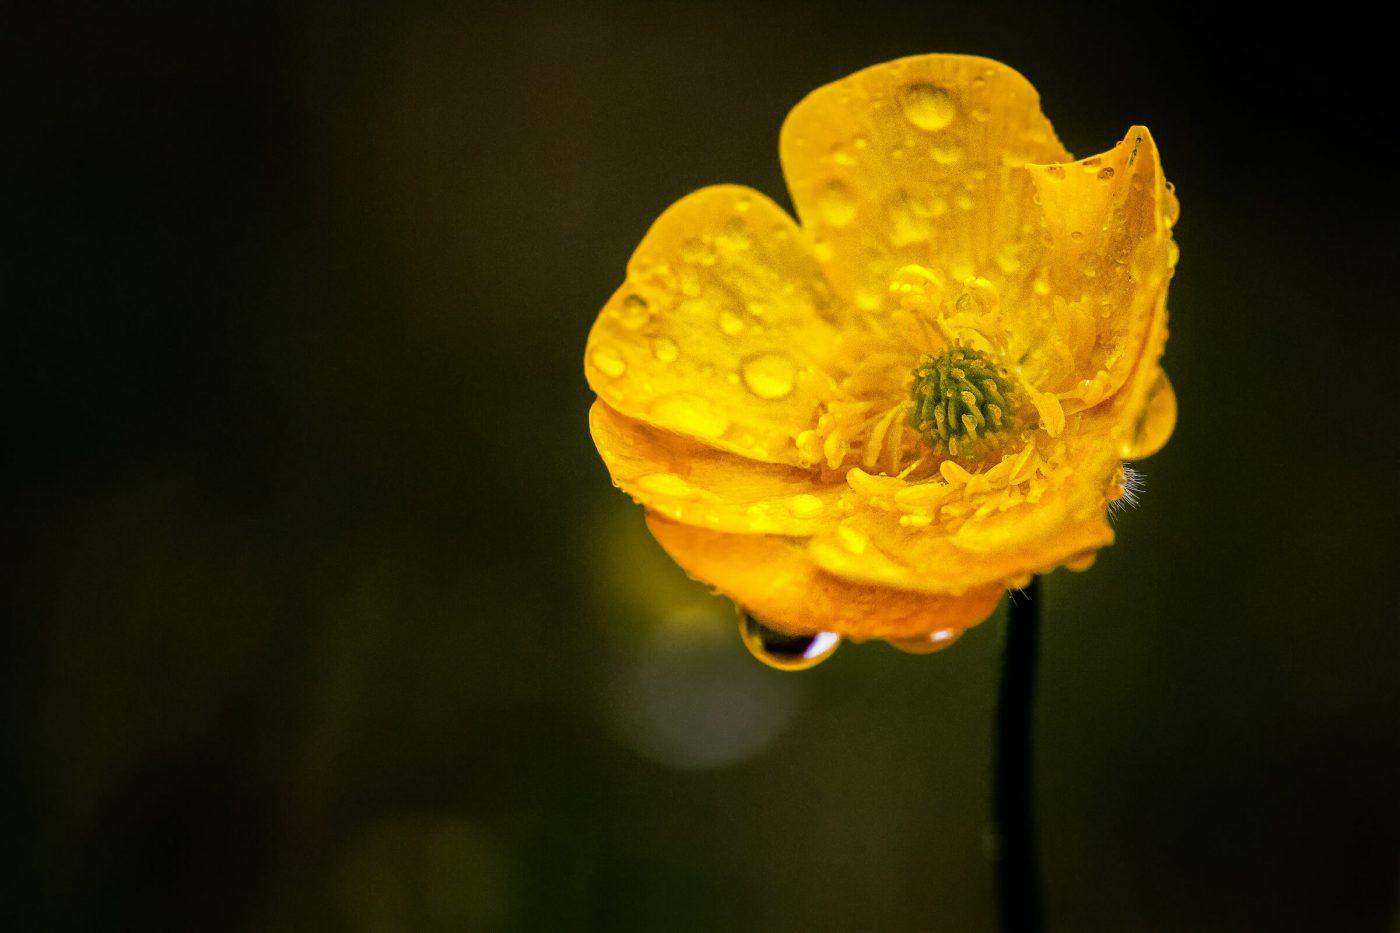 A flower full of fresh rainwater in South Greenland. Photo by Mads Pihl